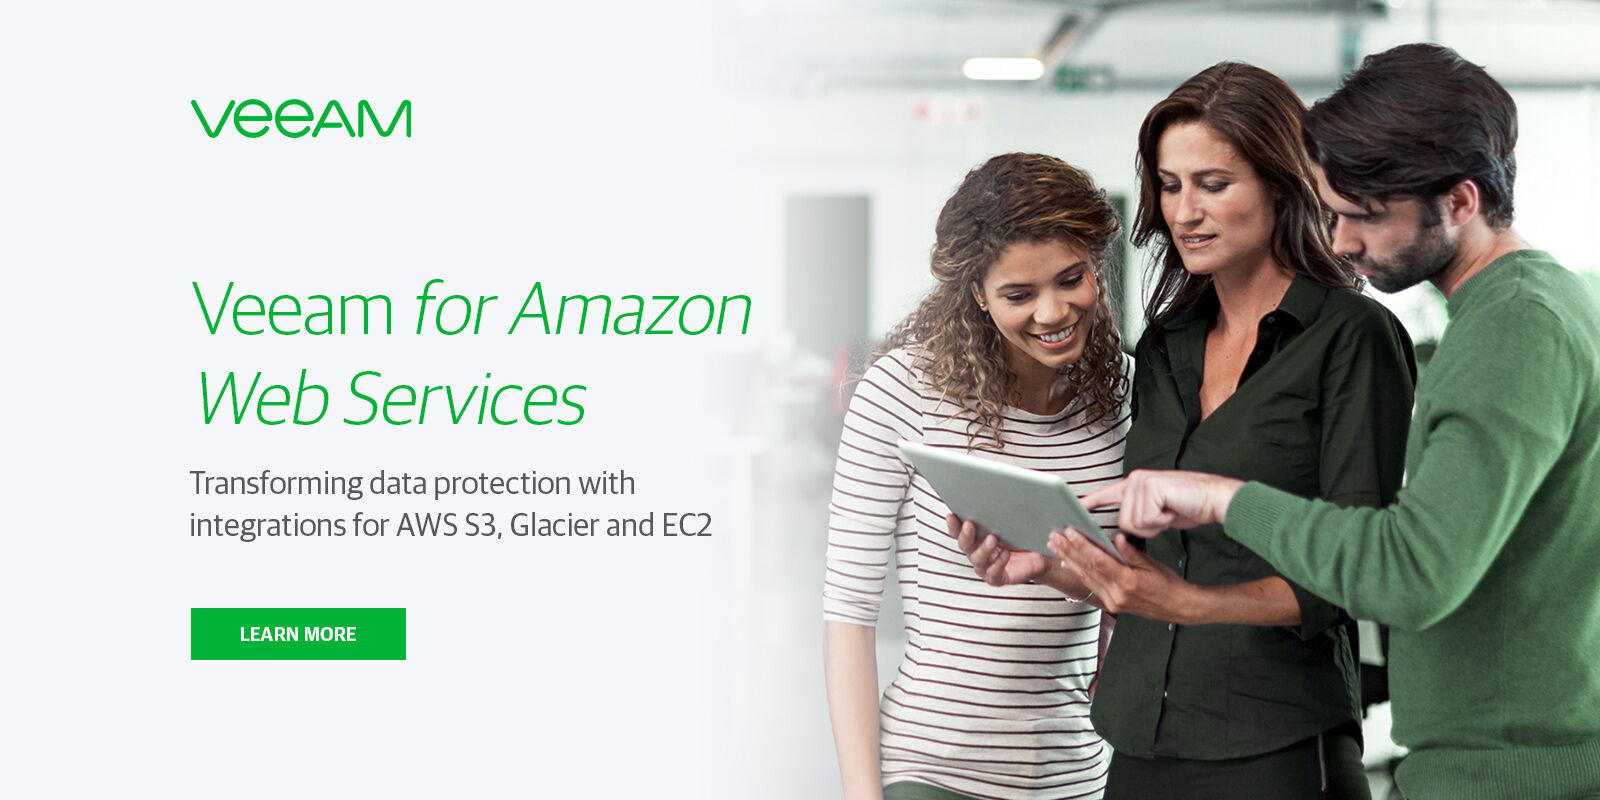 AWS backup solutions – protection for AWS S3, Glacier and EC2